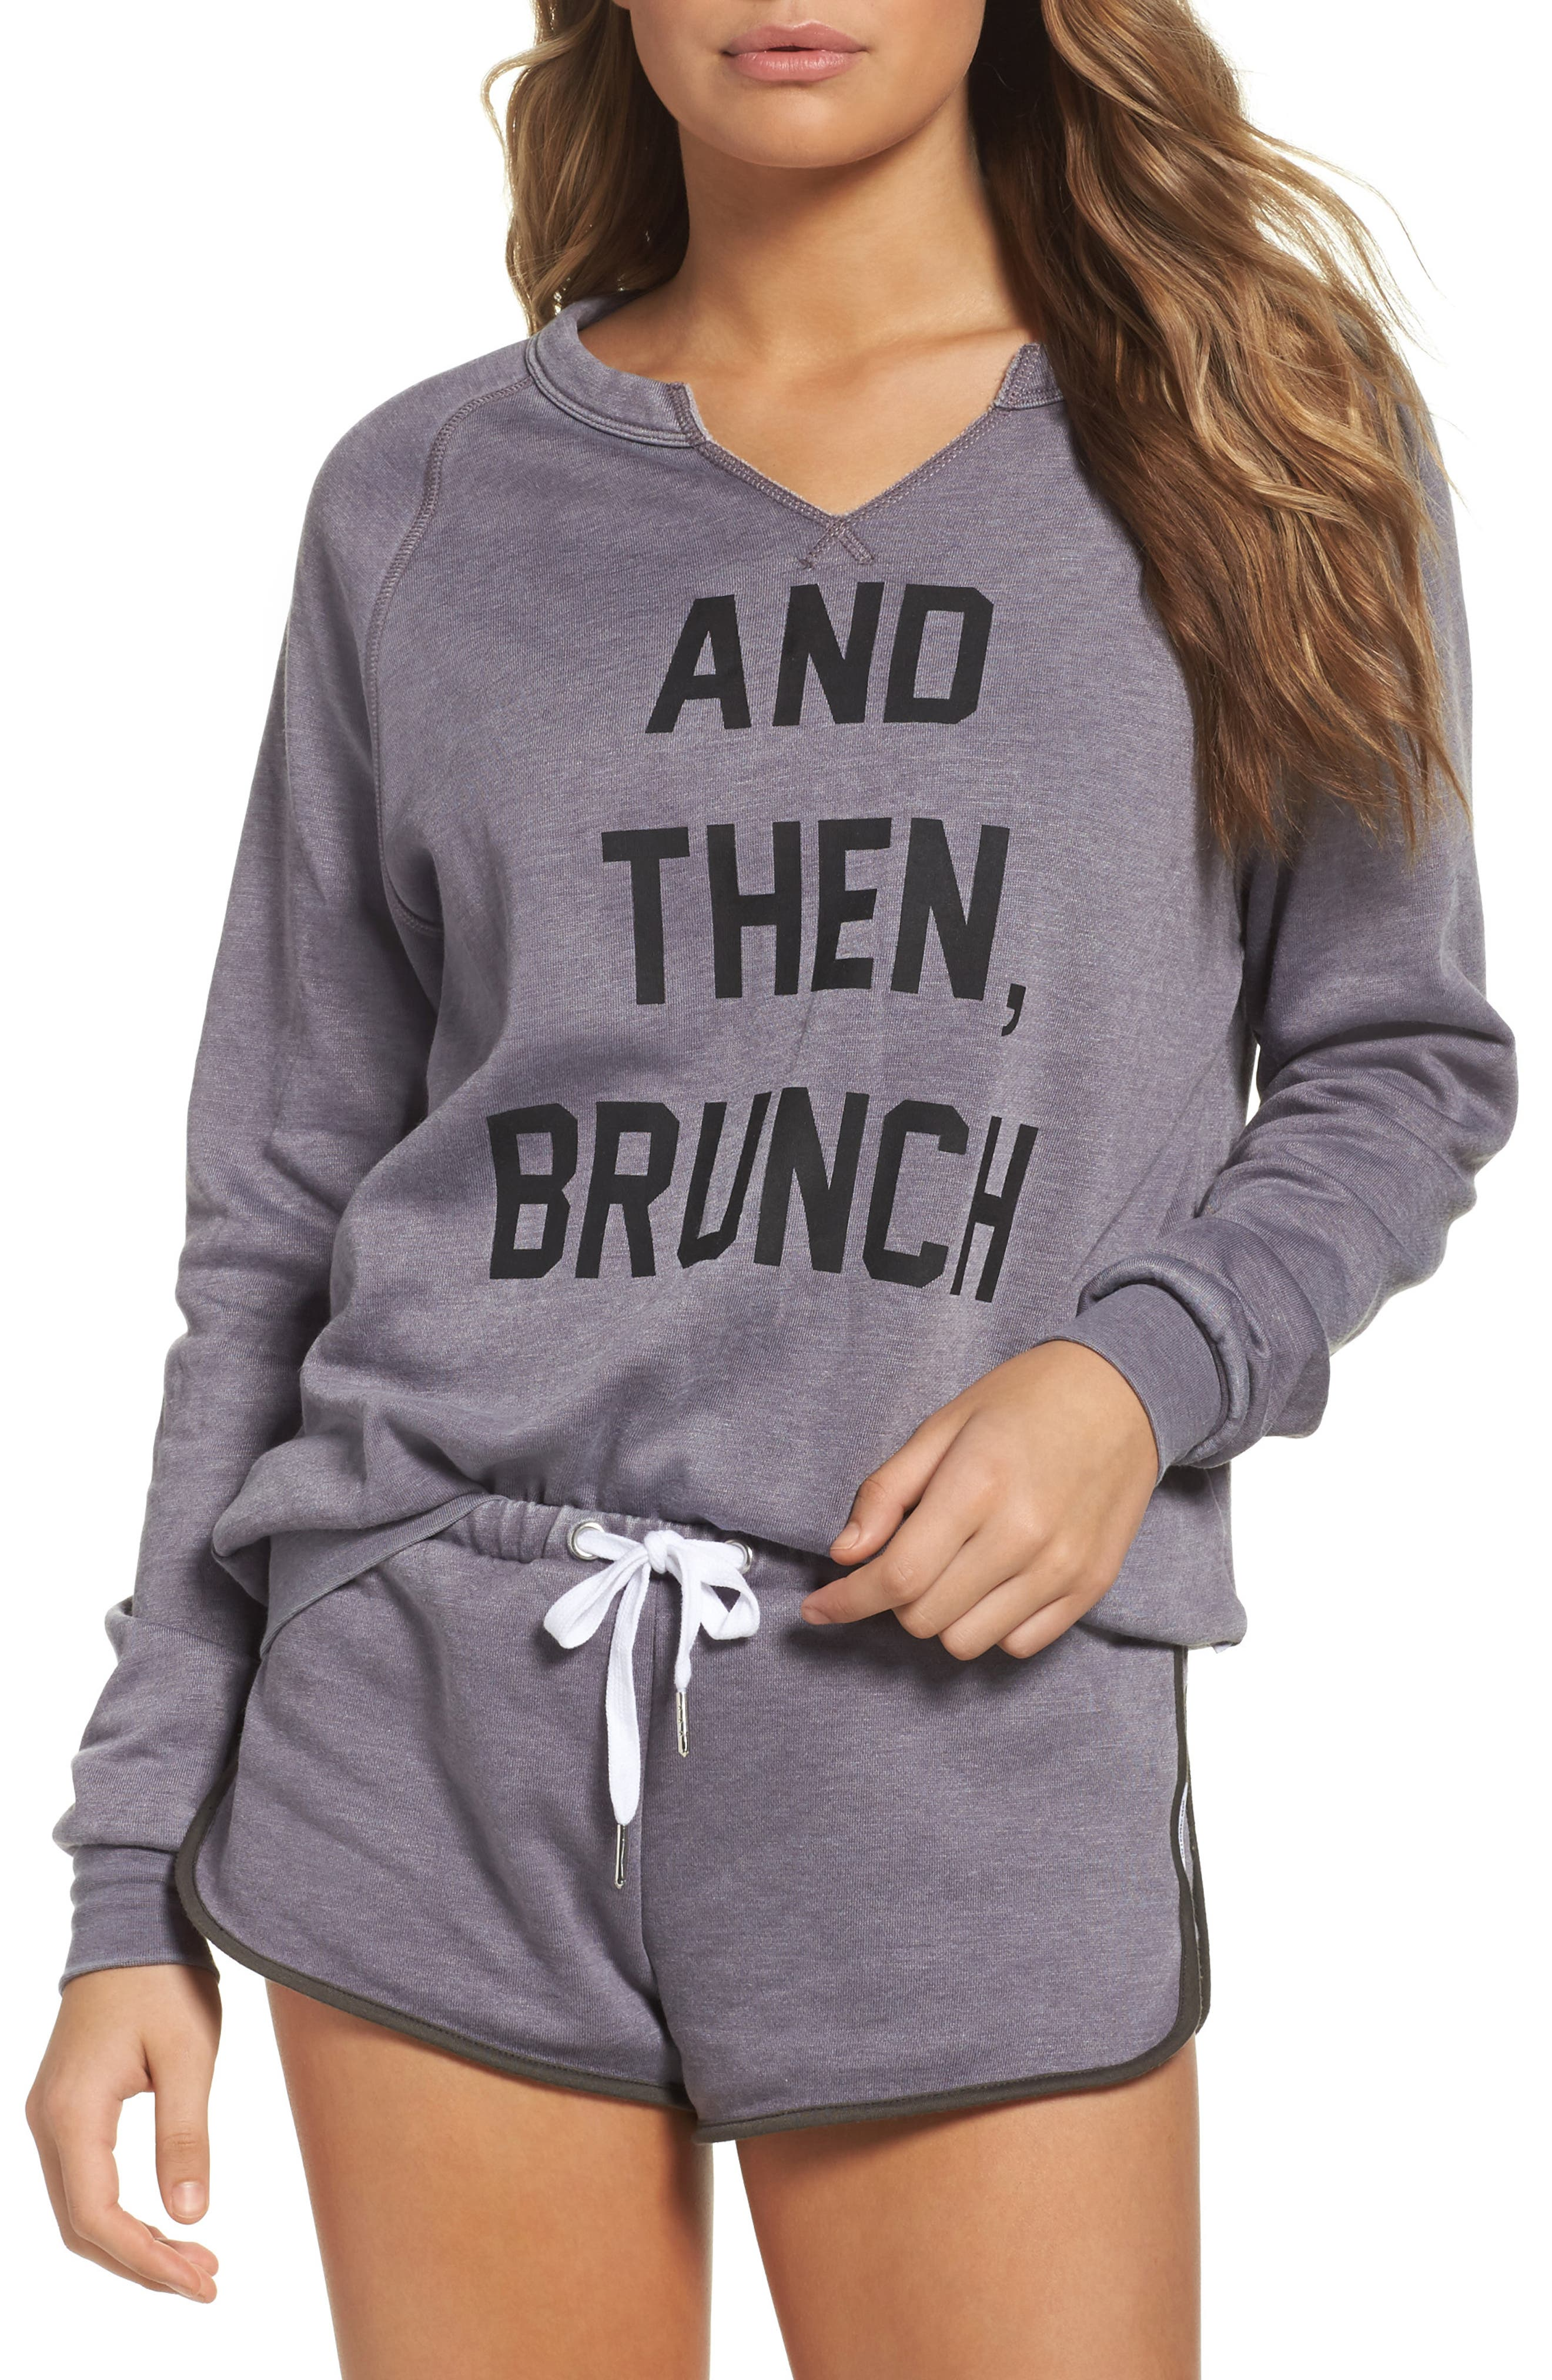 THE LAUNDRY ROOM,                             And Then Brunch Sweatshirt,                             Alternate thumbnail 6, color,                             020